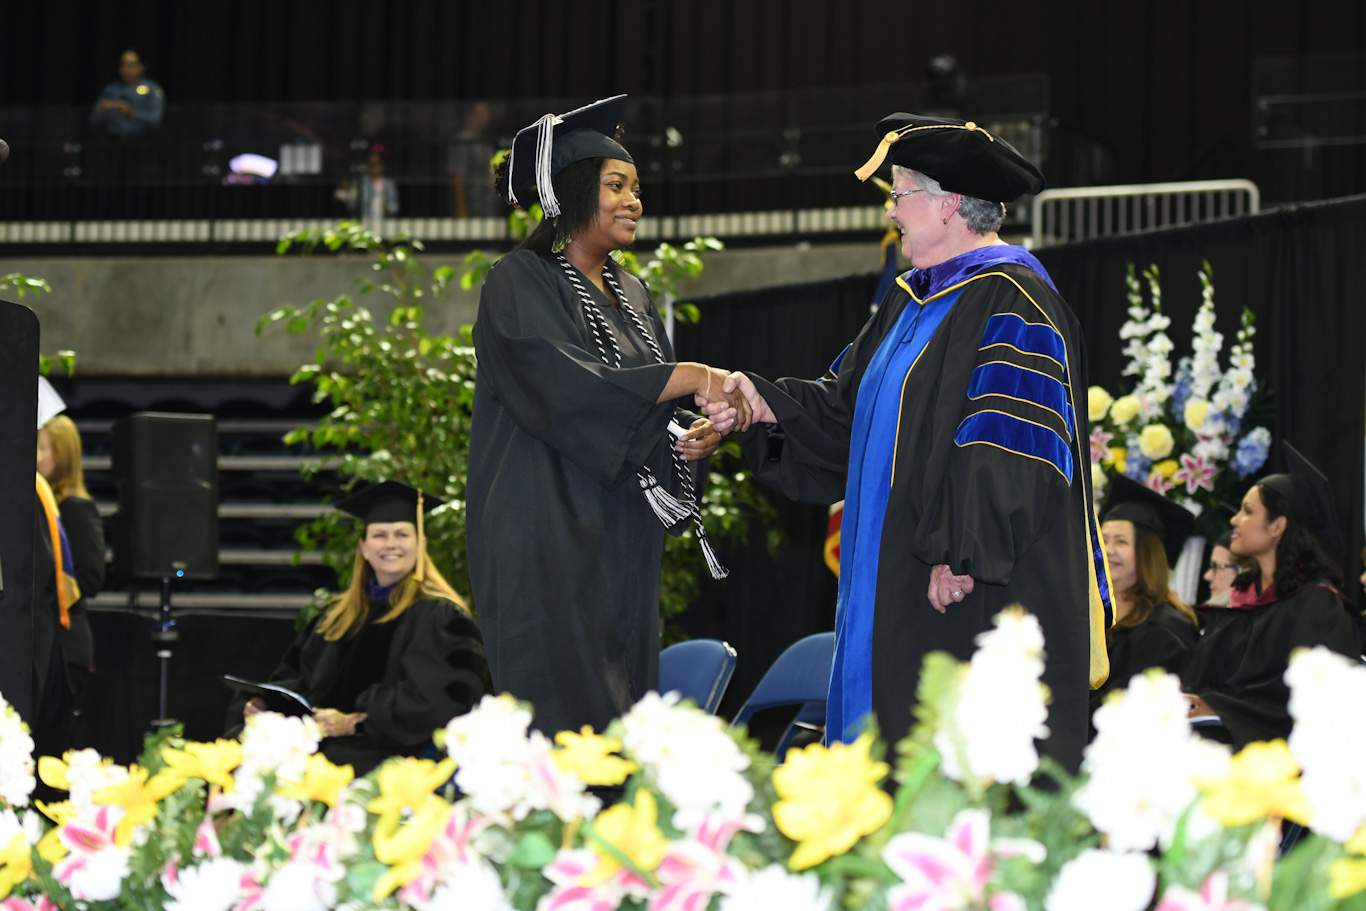 San Joaquin Delta College Superintendent/President Kathy Hart congraulates a graduate at the 2018 Commencement ceremony.